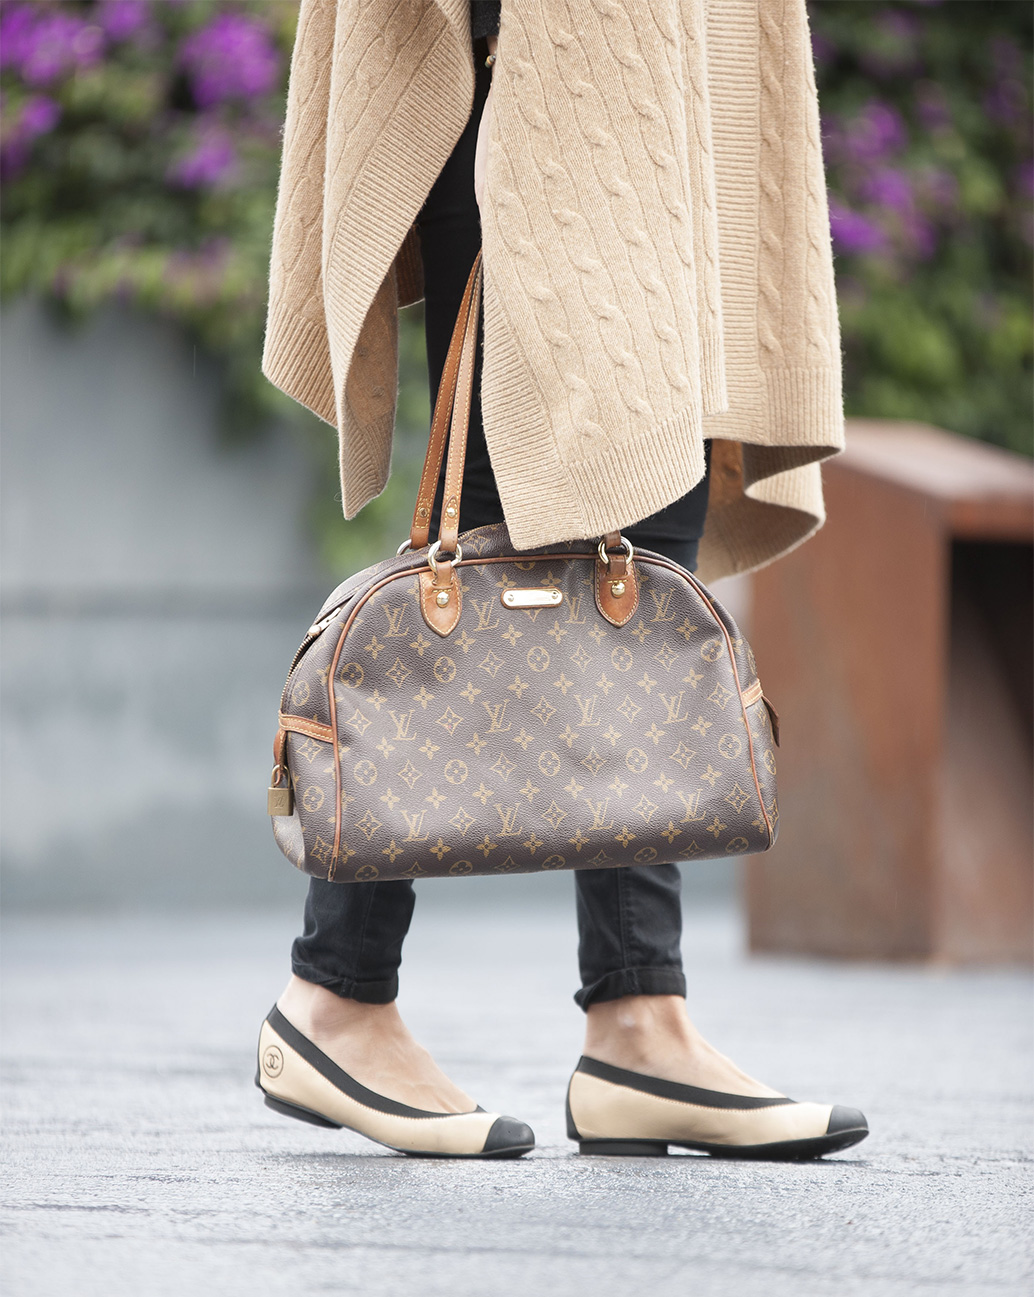 Louis-Vuitton-Vintage-bag_addictochic